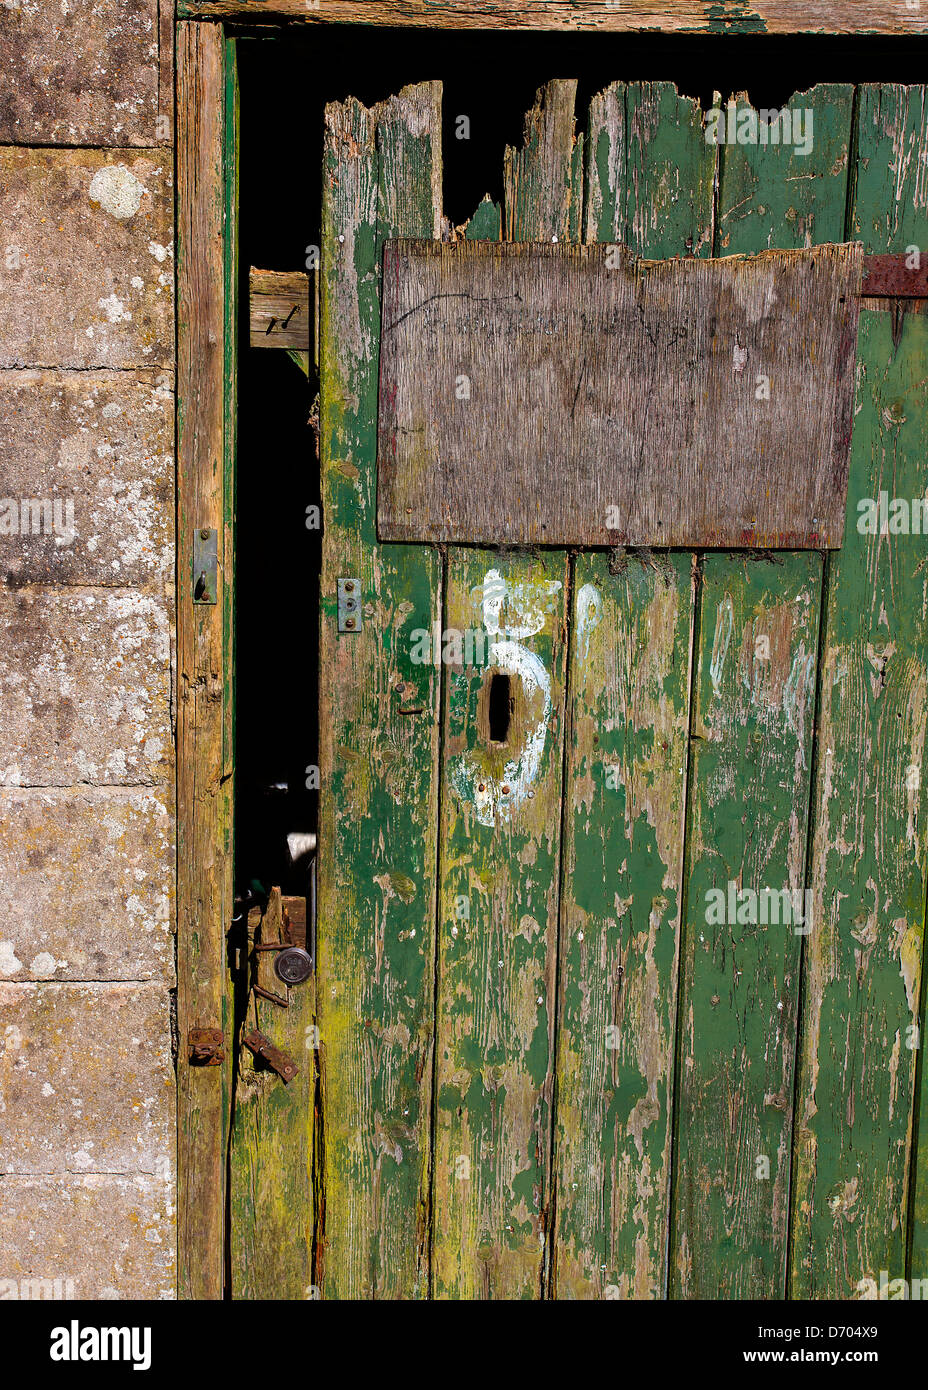 Old broken rotten decayed outhouse door - Stock Image & Outhouse Door Stock Photos \u0026 Outhouse Door Stock Images - Alamy